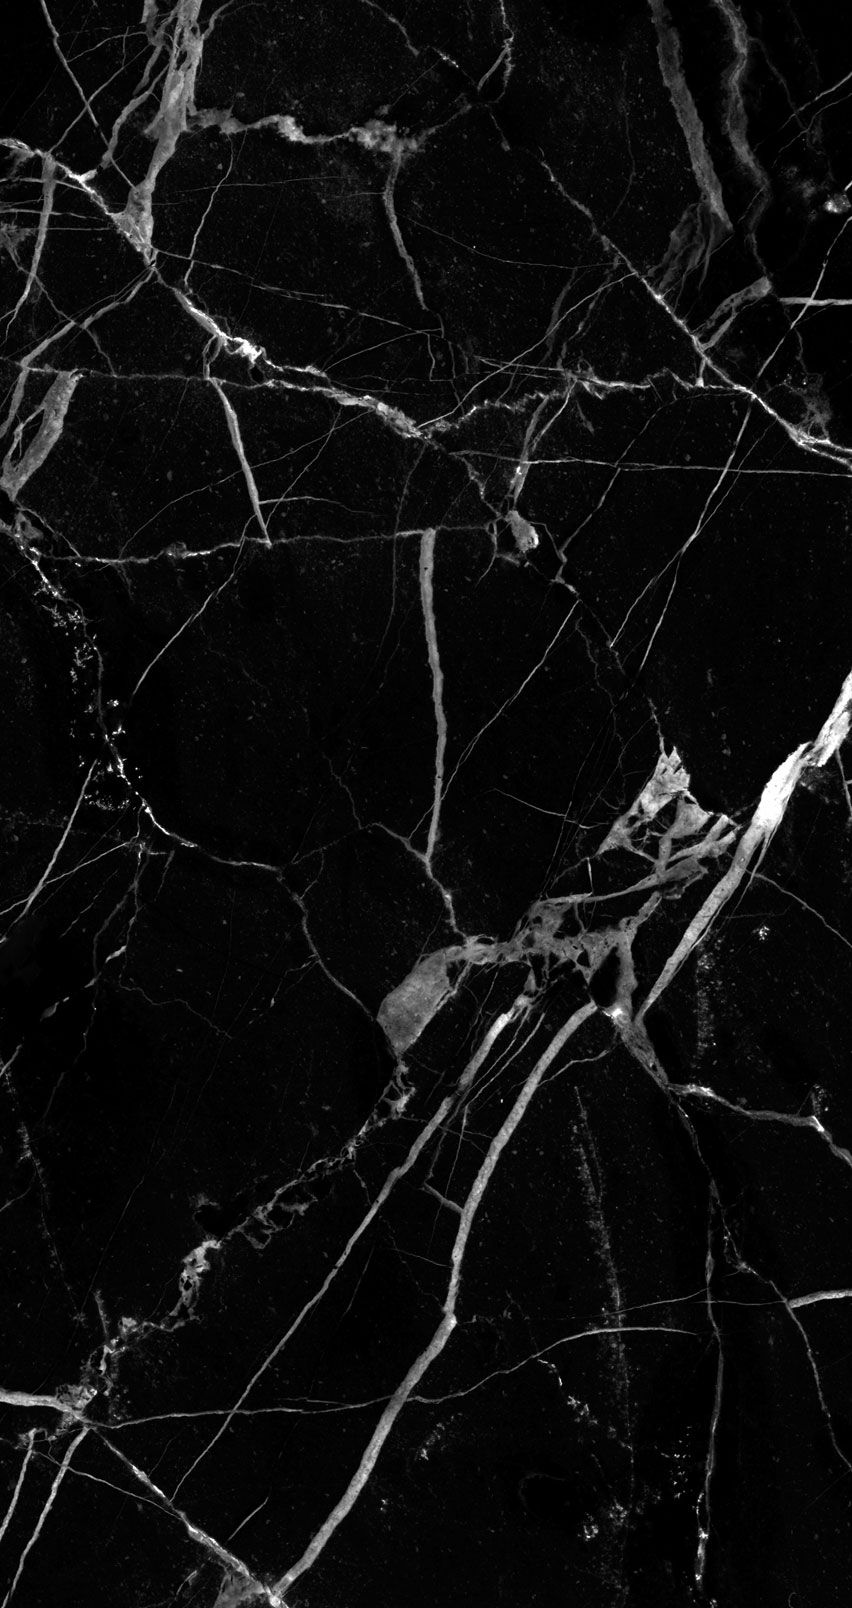 Wallpaper iphone tumblr black - Black Marble Just Let It Be Quote Grunge Tumblr Aesthetic Iphone Background Wallpaper Quotes Pinterest Grunge Marbles And Wallpaper